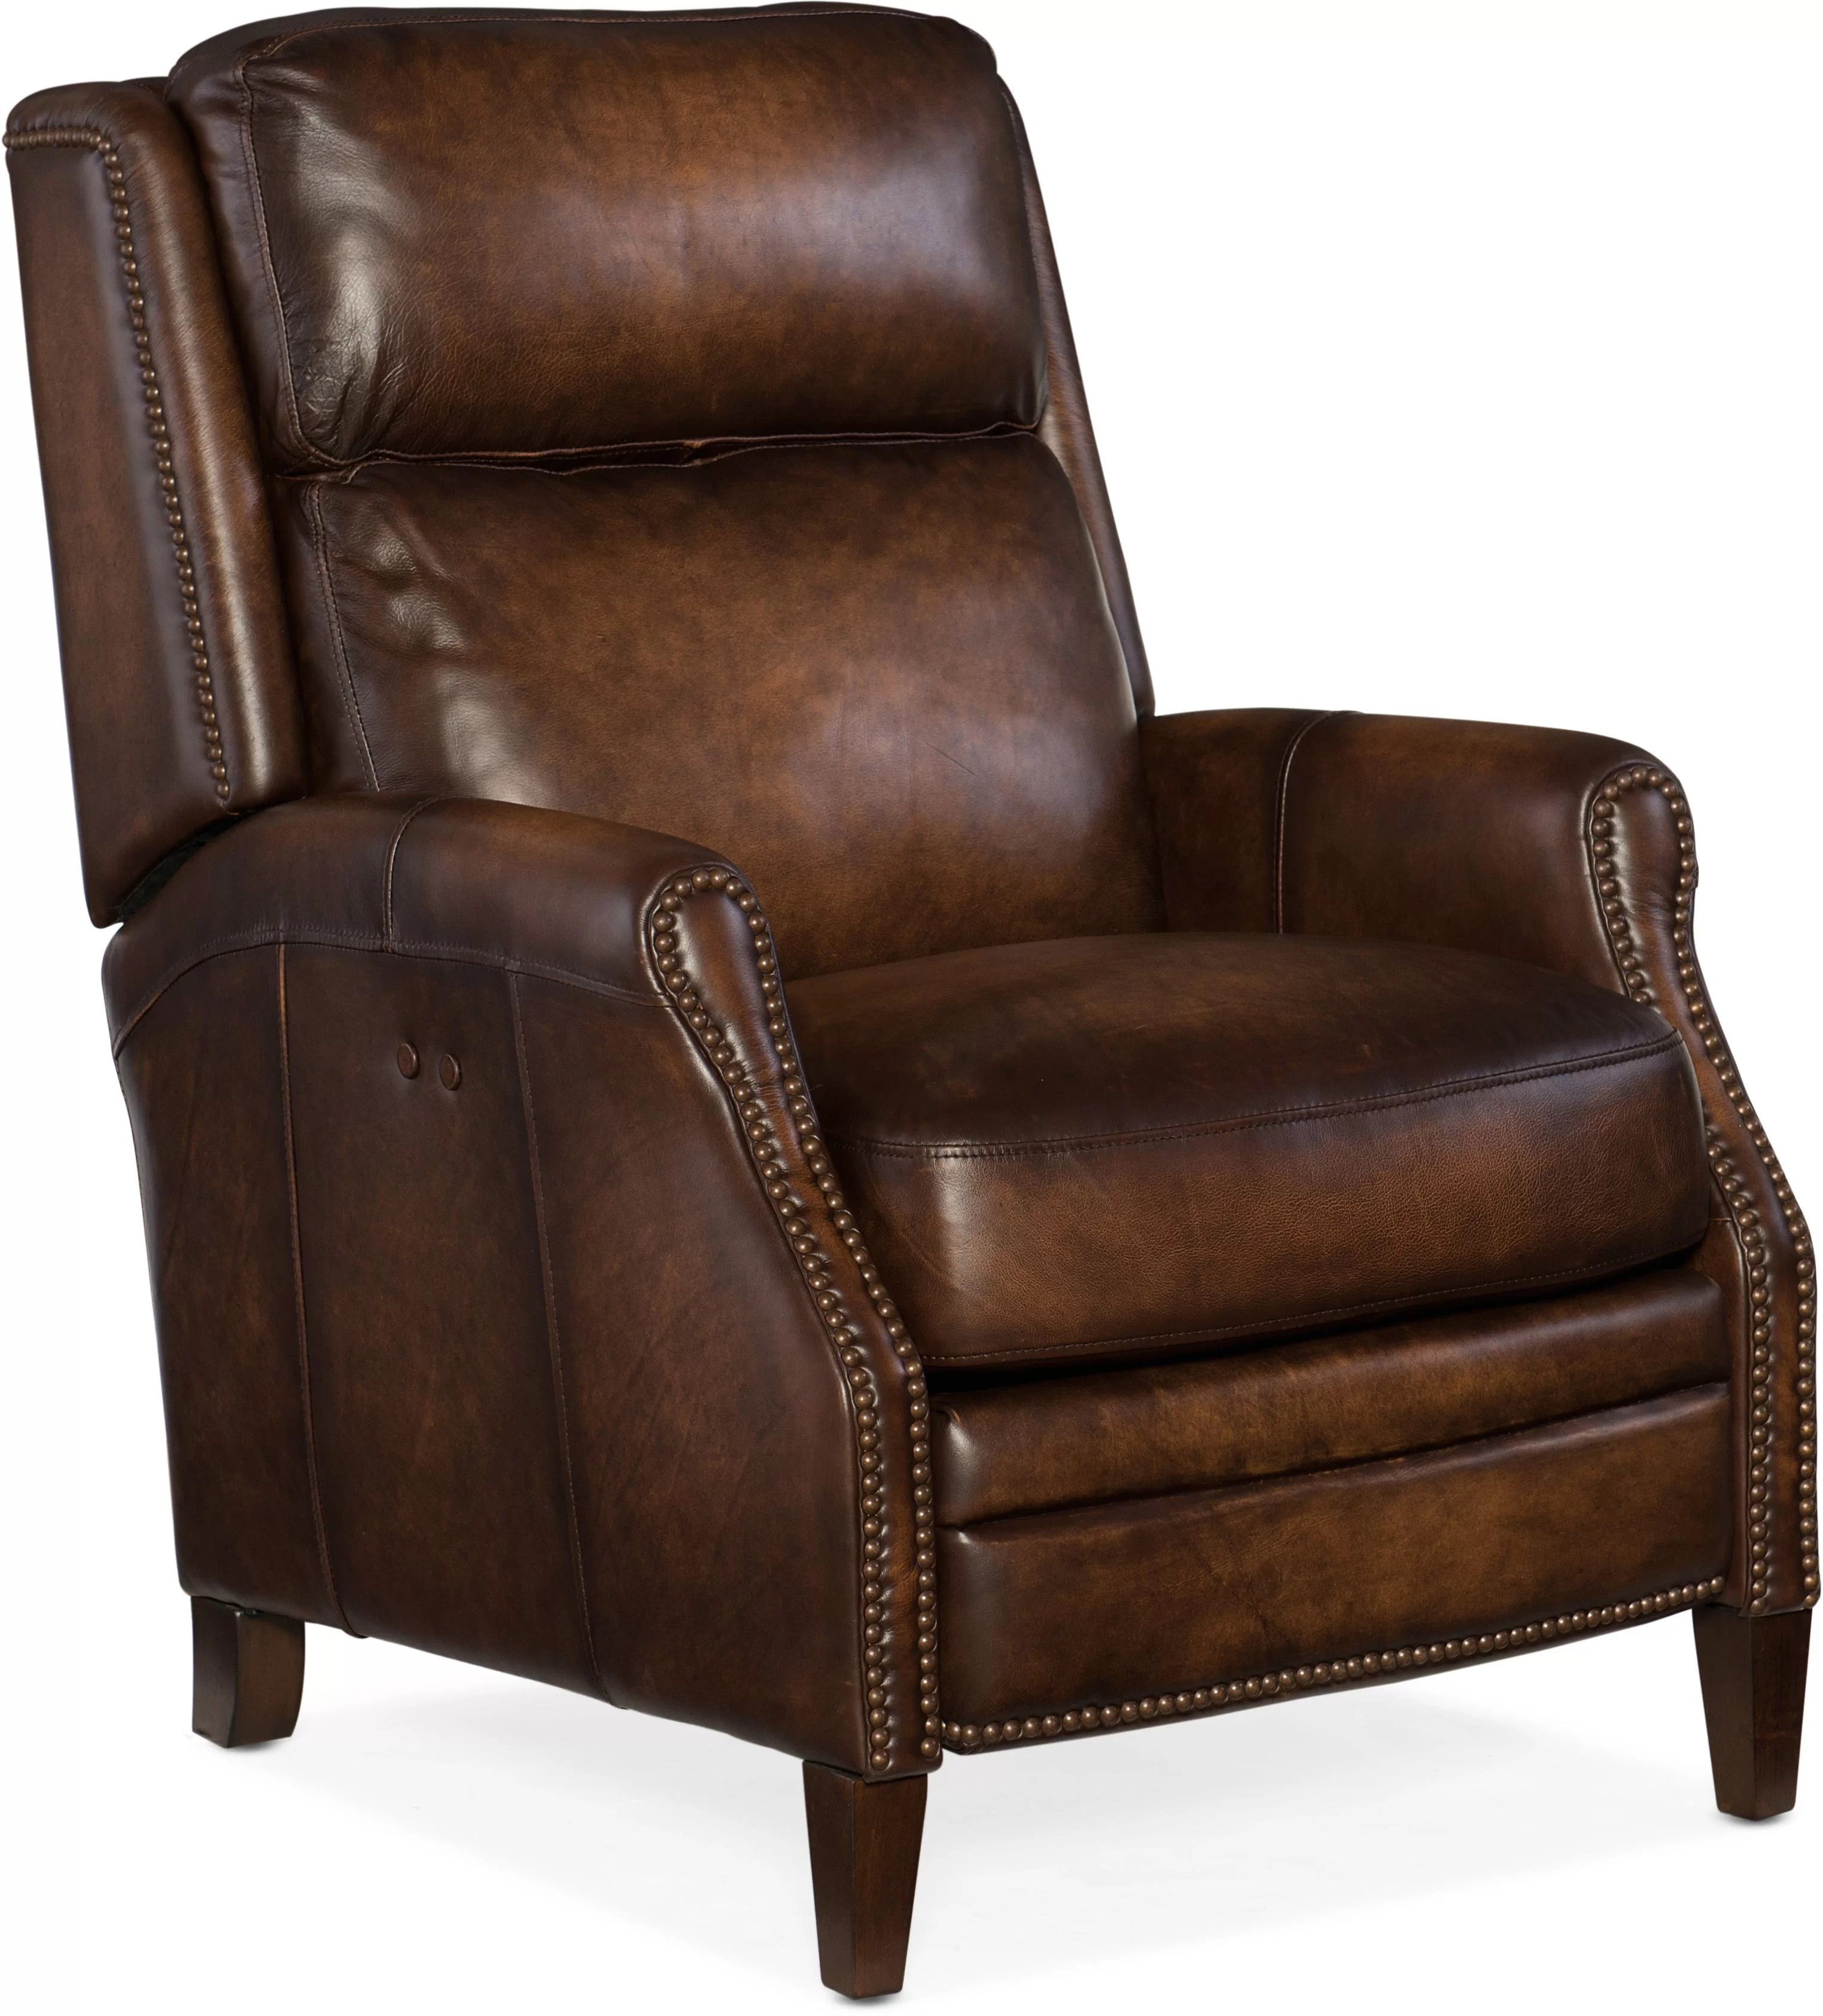 Electric Recliner Leather Chairs Zephyr Leather Power Recliner